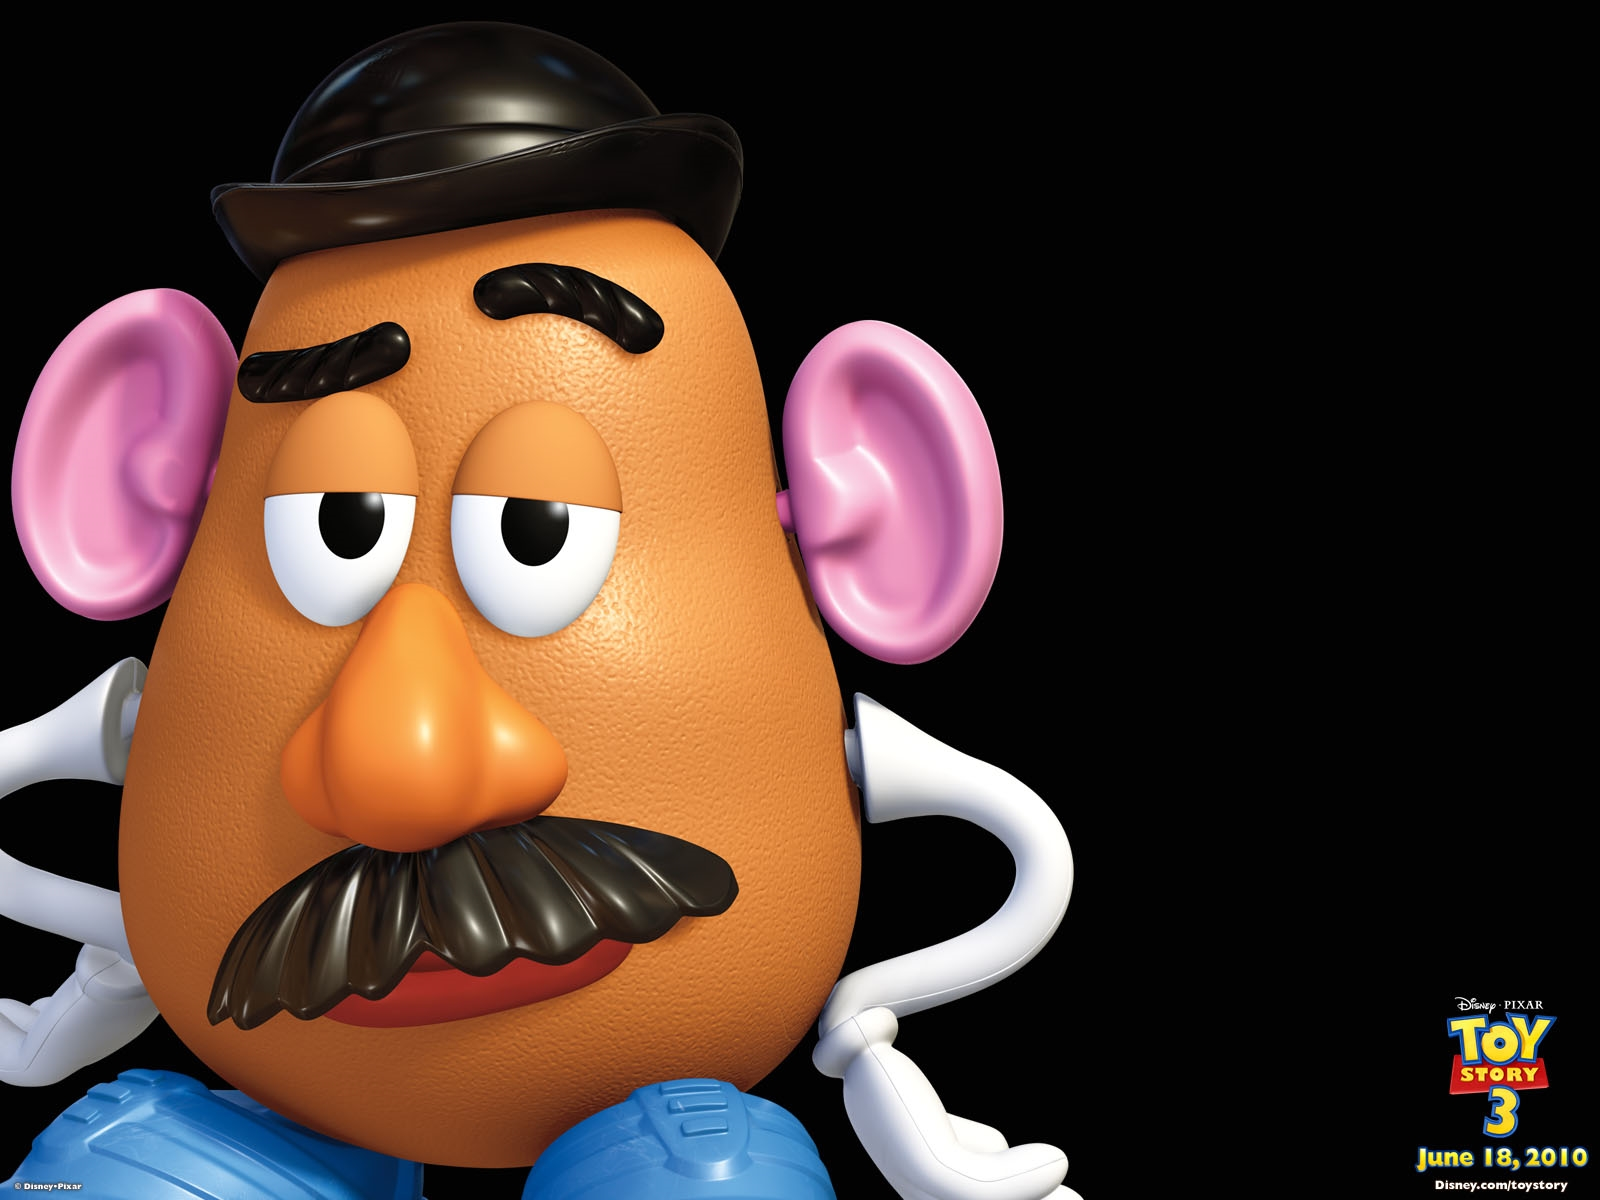 potato head toy story 1 2 3 free hd desktop wallpaper